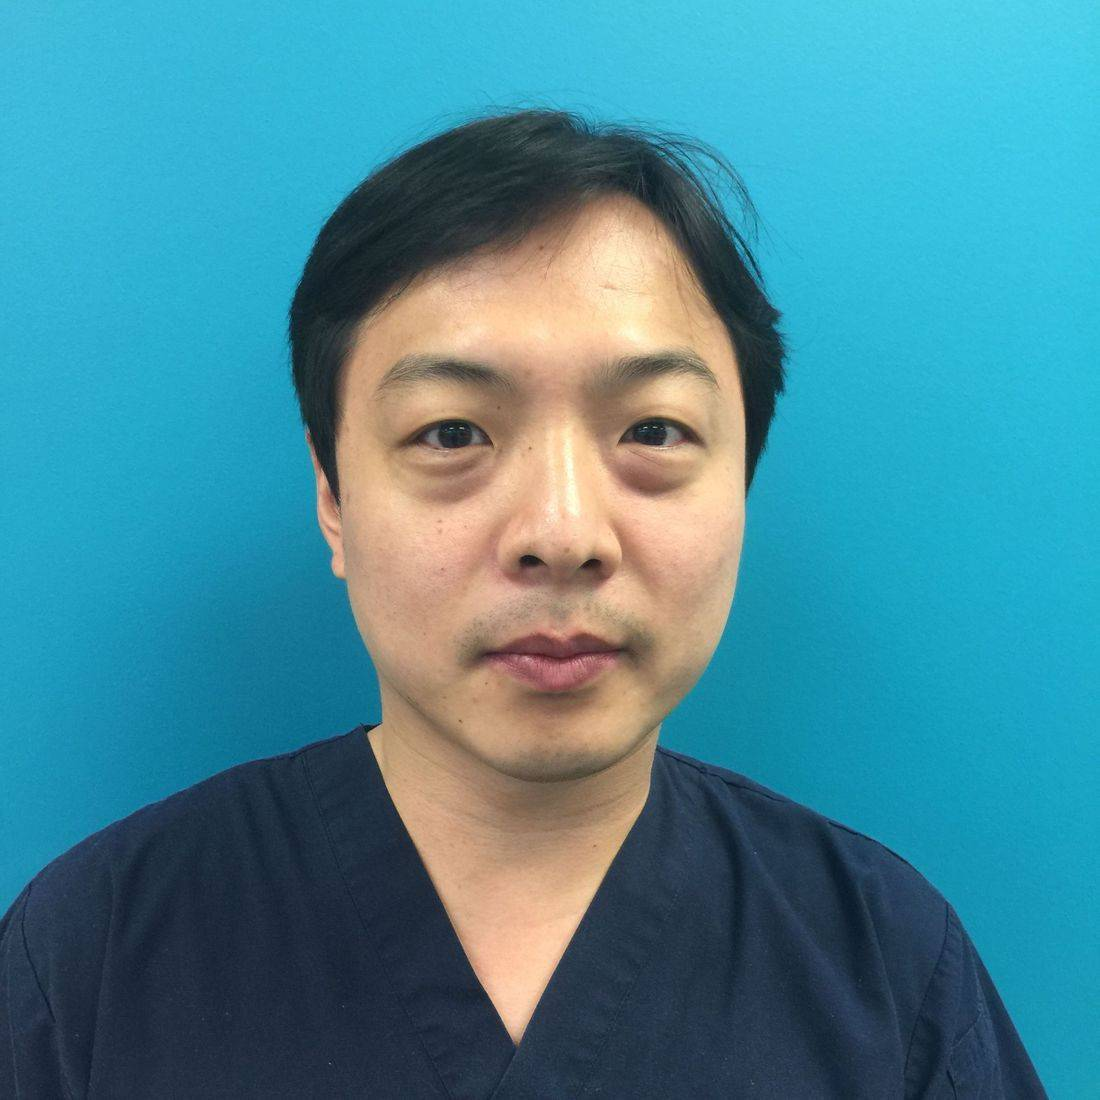 Doctor of TCM, Registered Acupuncturist Surrey